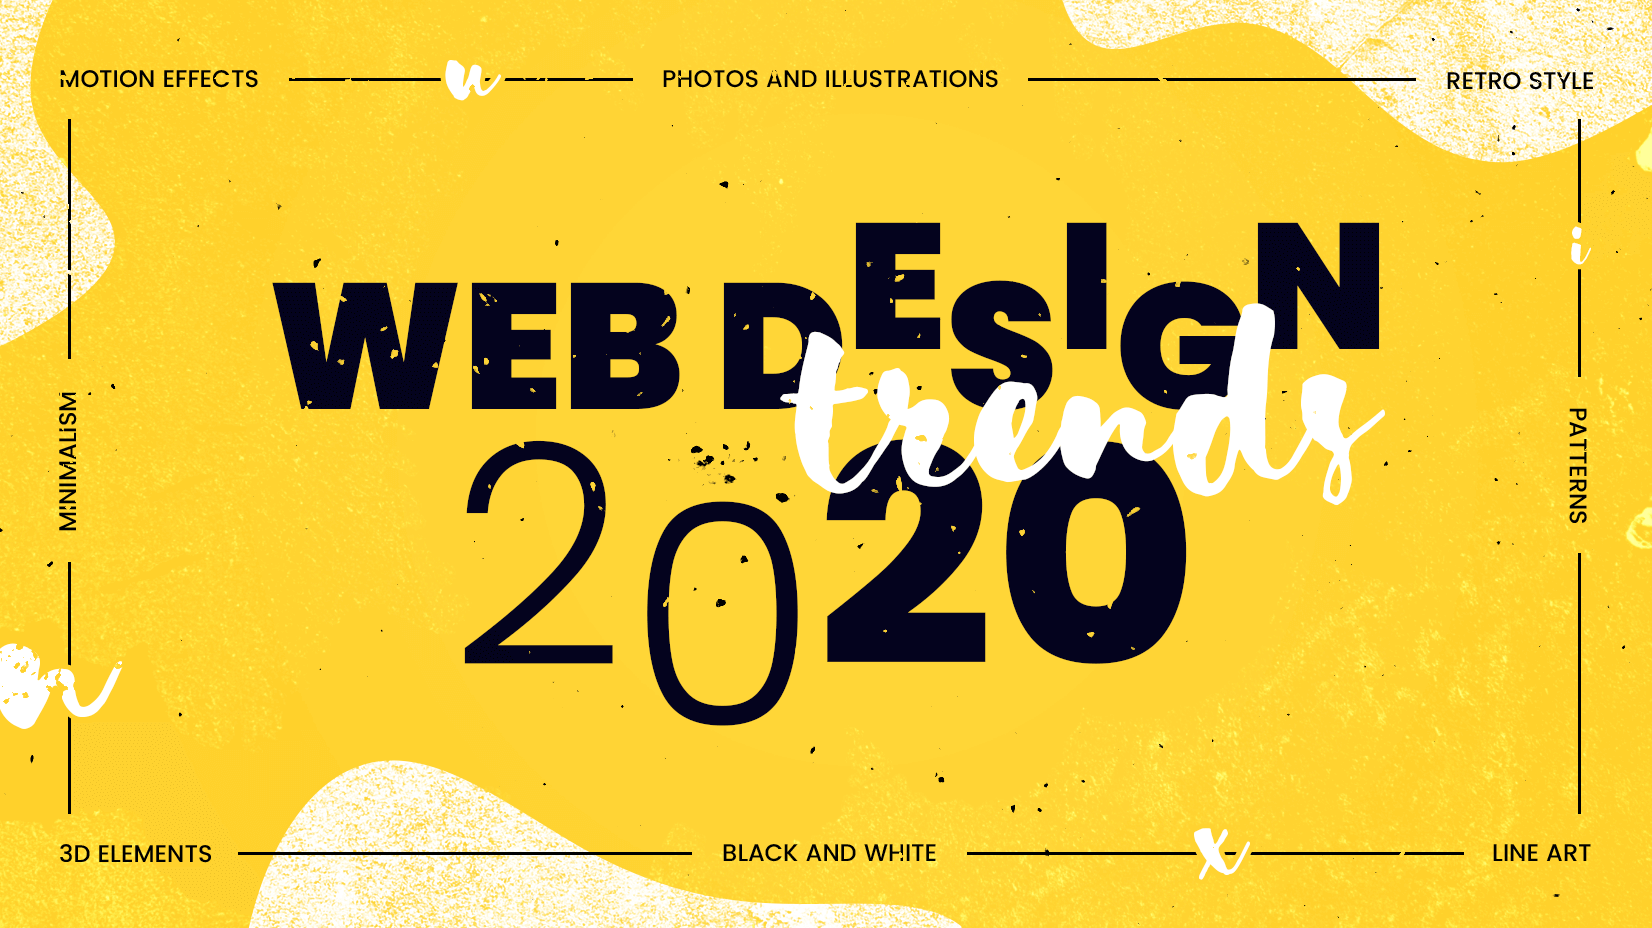 Web Design Trends 2020.Web Design Trends 2020 High Tech Visually Mind Blowing